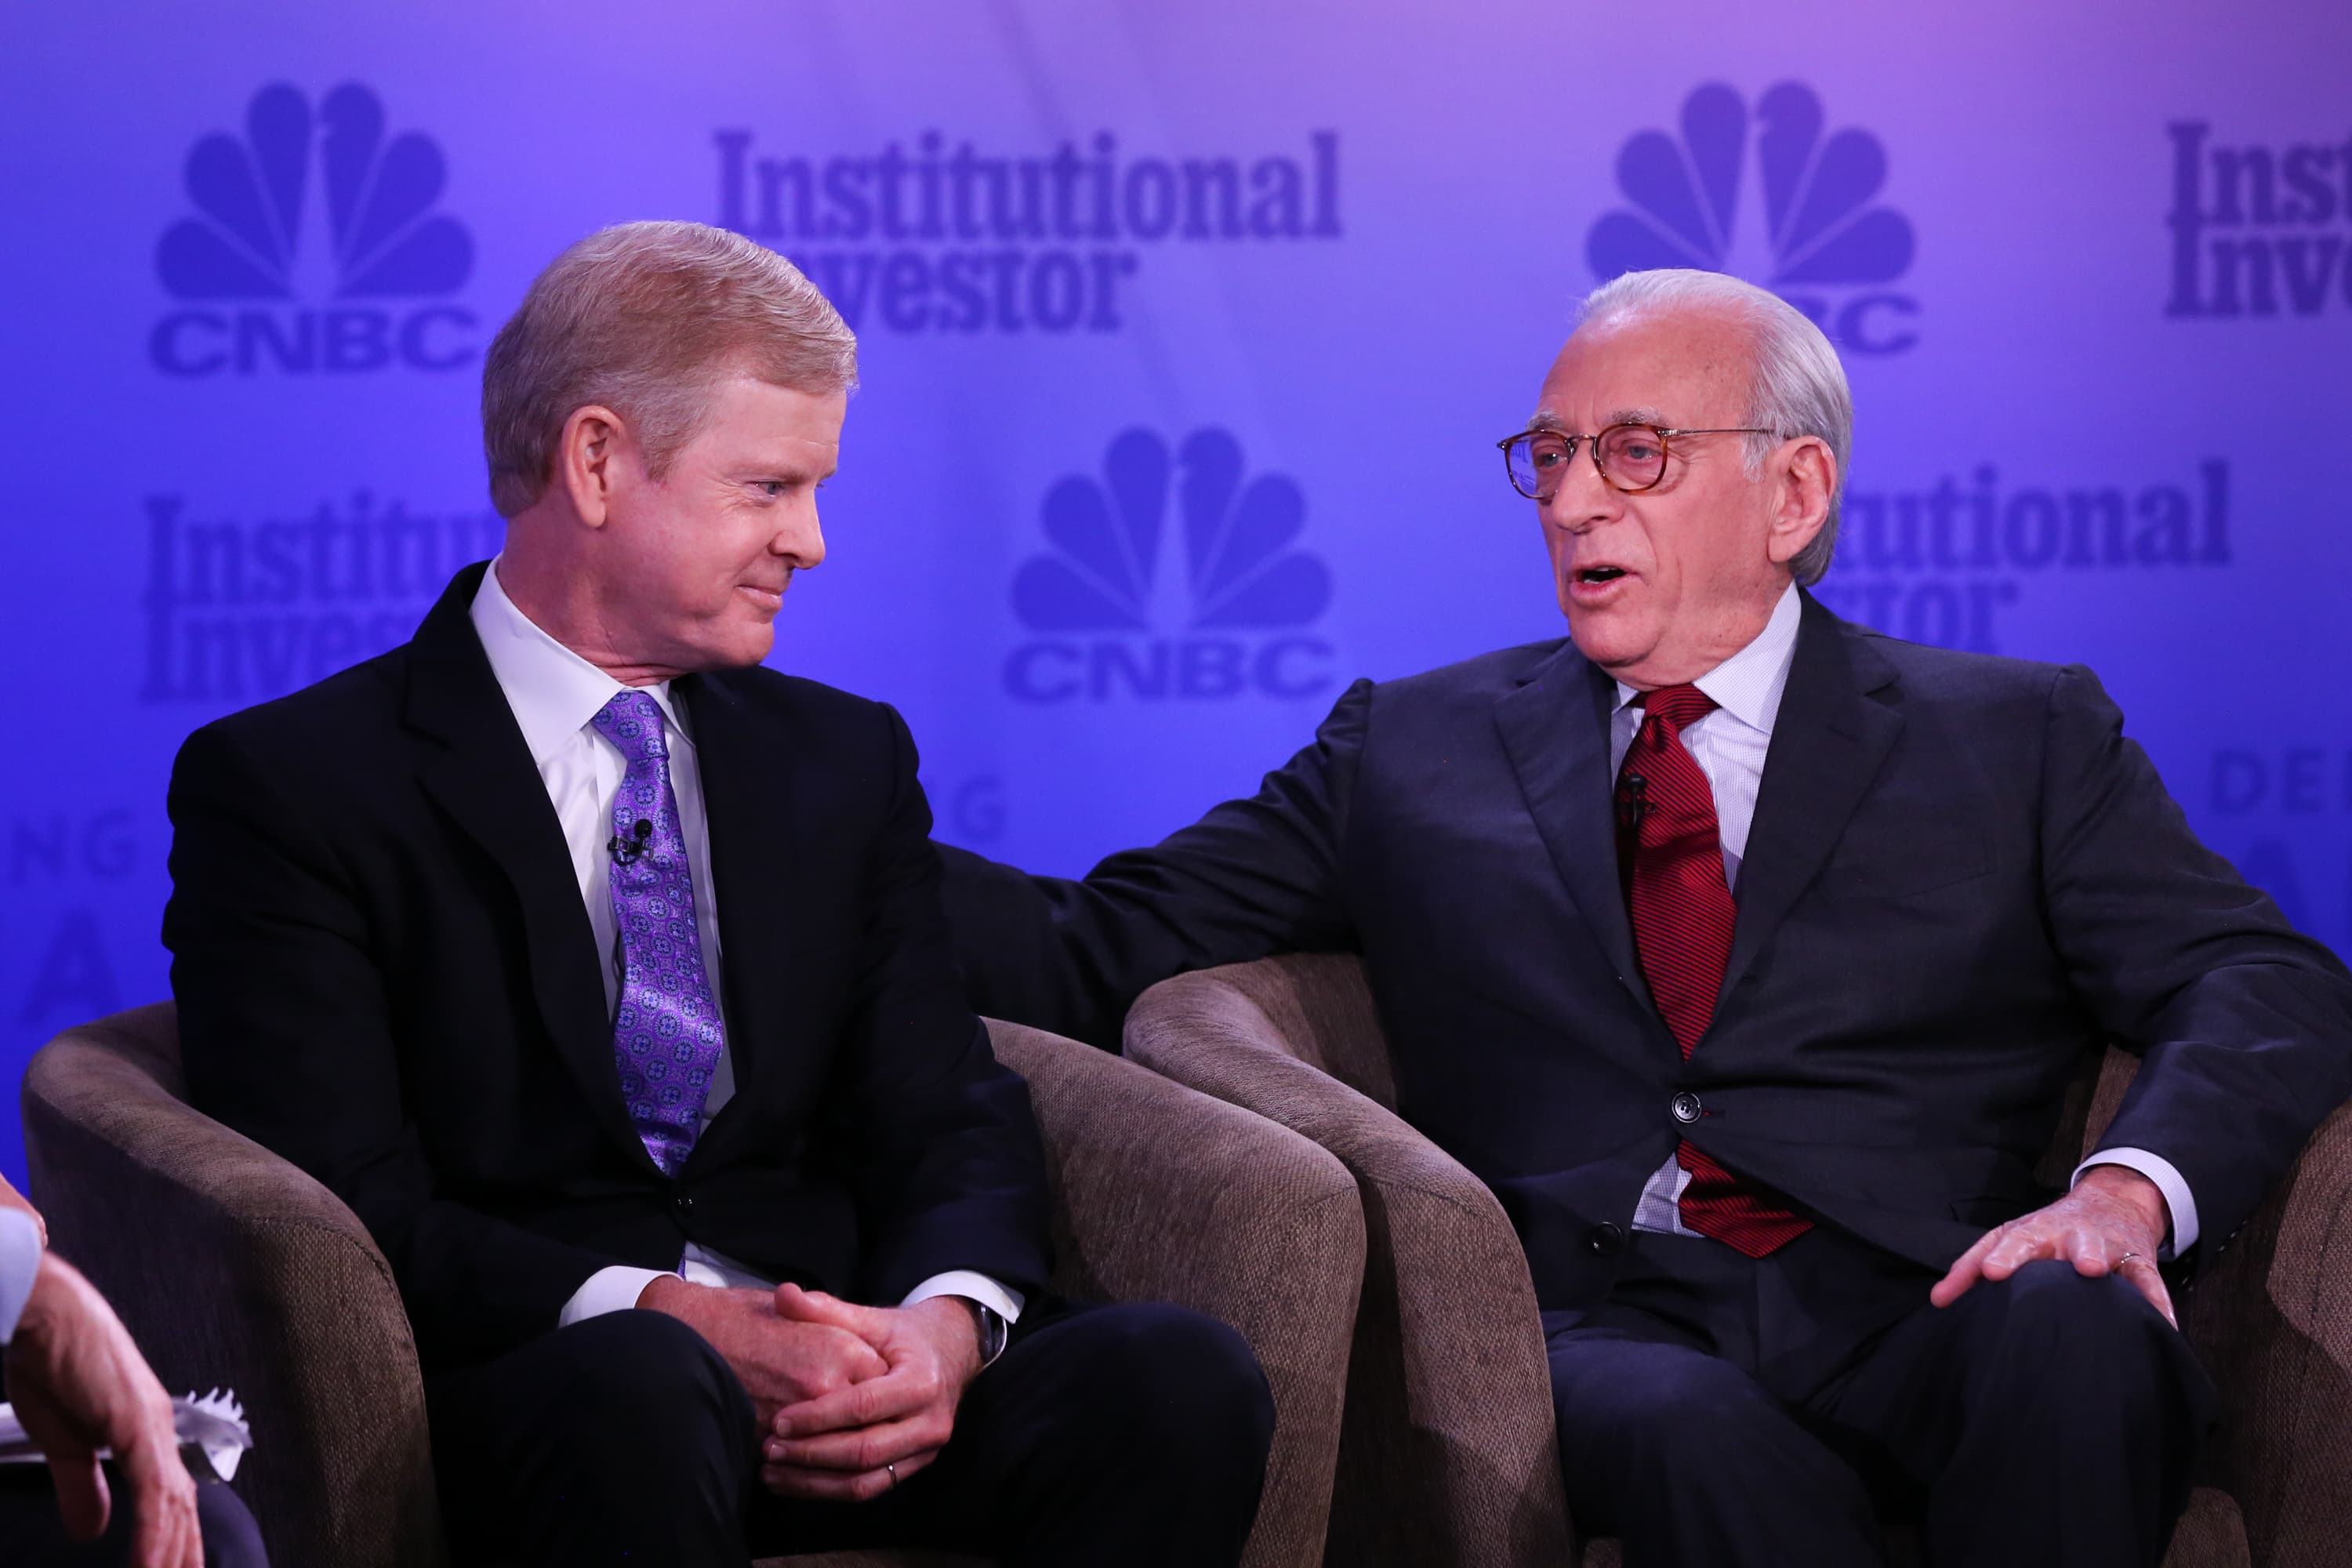 Nelson Peltz lauds relationship with P&G: 'We're getting along so well'